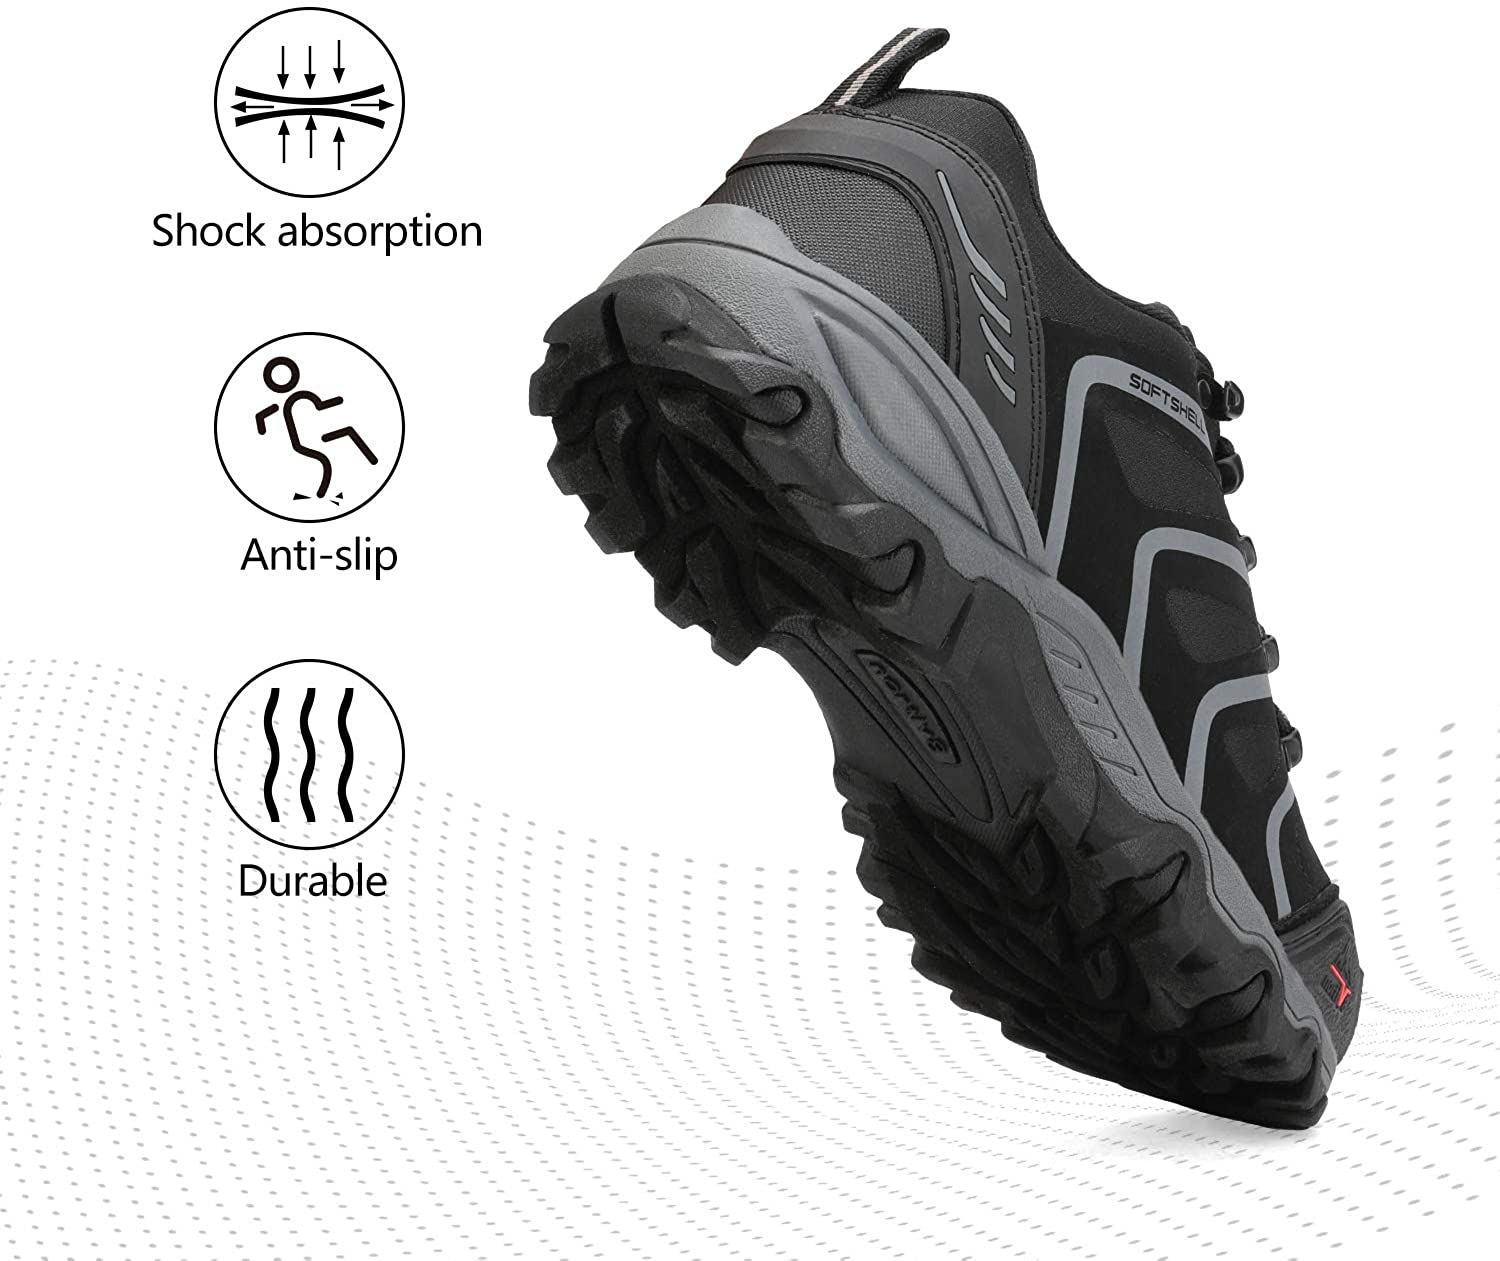 NORTIV 8 Mens Low Top Waterproof Hiking Boots Outdoor Lightweight Shoes Backpacking Trekking Trails